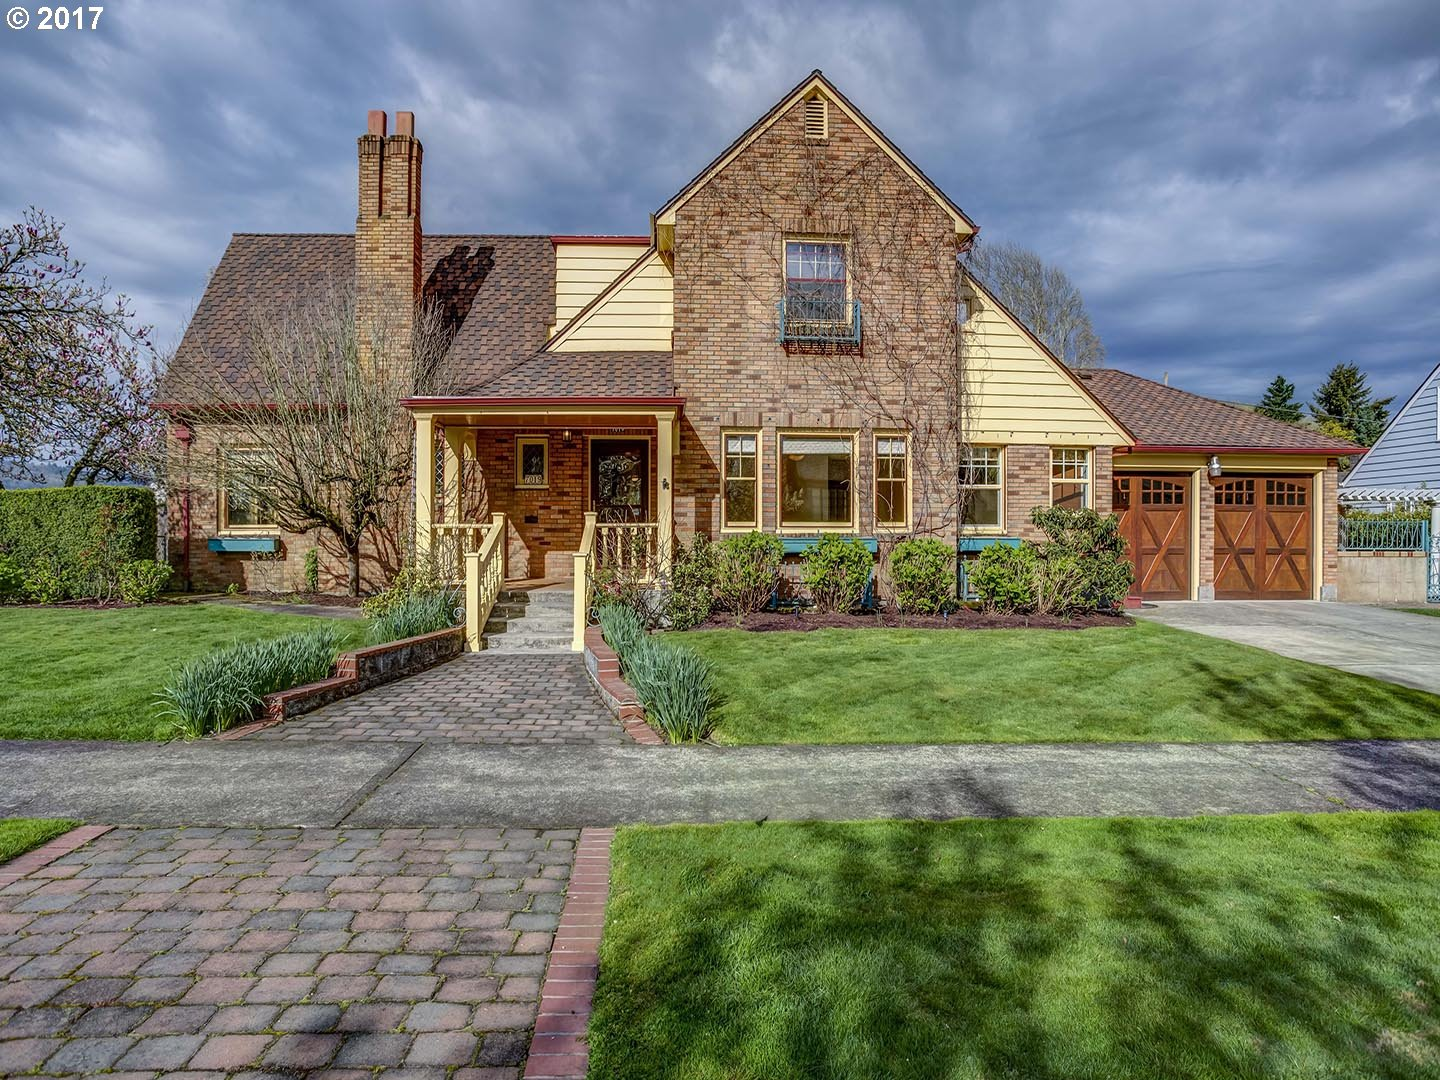 Classic Tudor.Possible contract. Huge corner lot.Up dated appliances,new floor in basement,oil tank decom.Hardwood Floors 1st & 2nd floor,mahogany wood work,2 patio areas +  deck.1 Family R on main, with blt in bookcase & slider to backyard. 1 Family Room in basement with a wet bar & fireplace. Wine cellar,15'x17'green House, shop. Too many amenities to list.LA is the owner